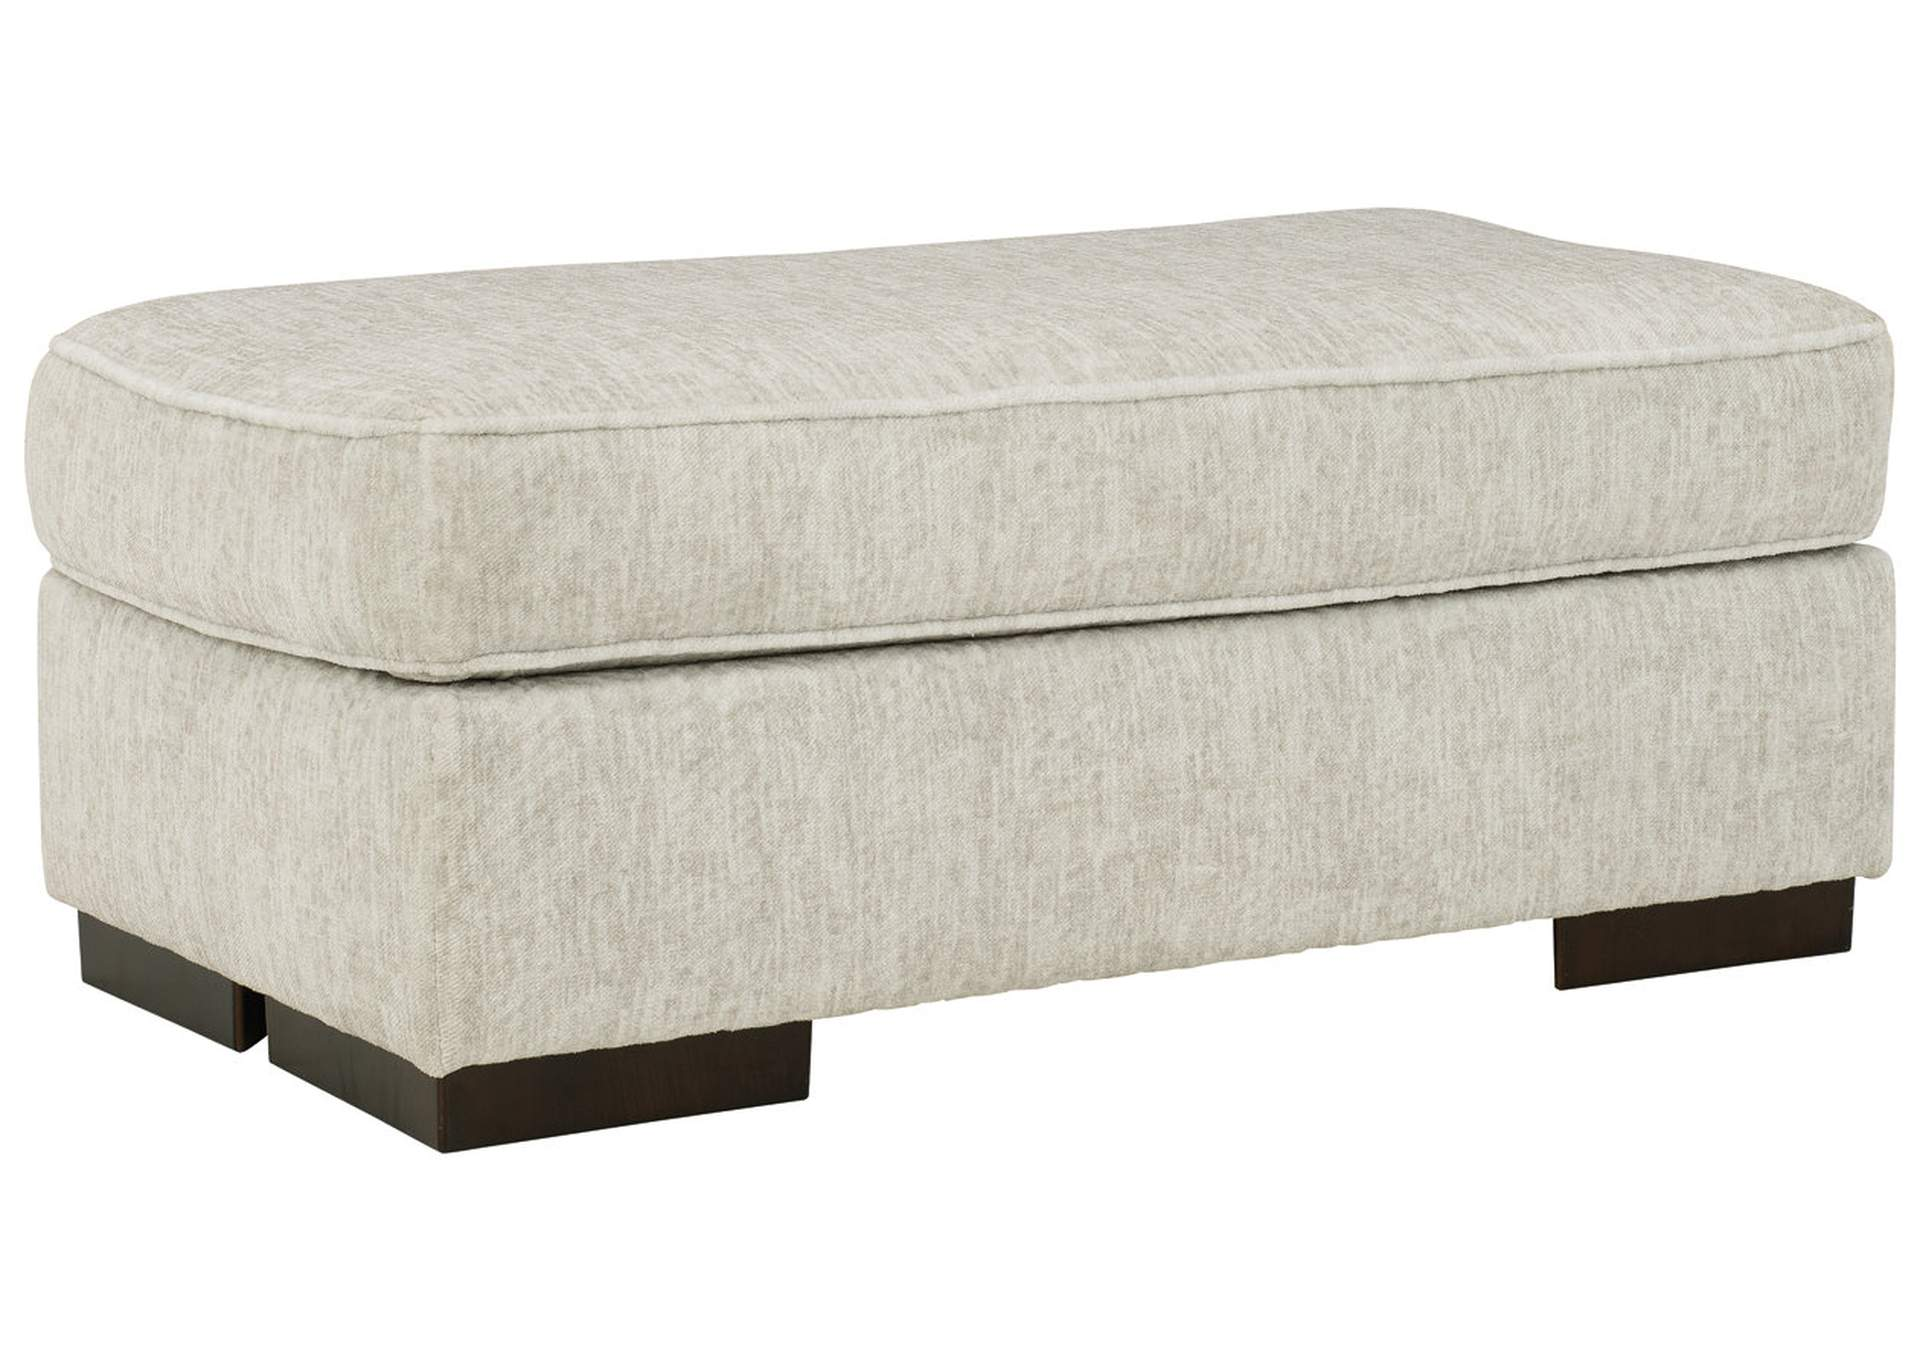 Alesandra Ottoman,Ashley